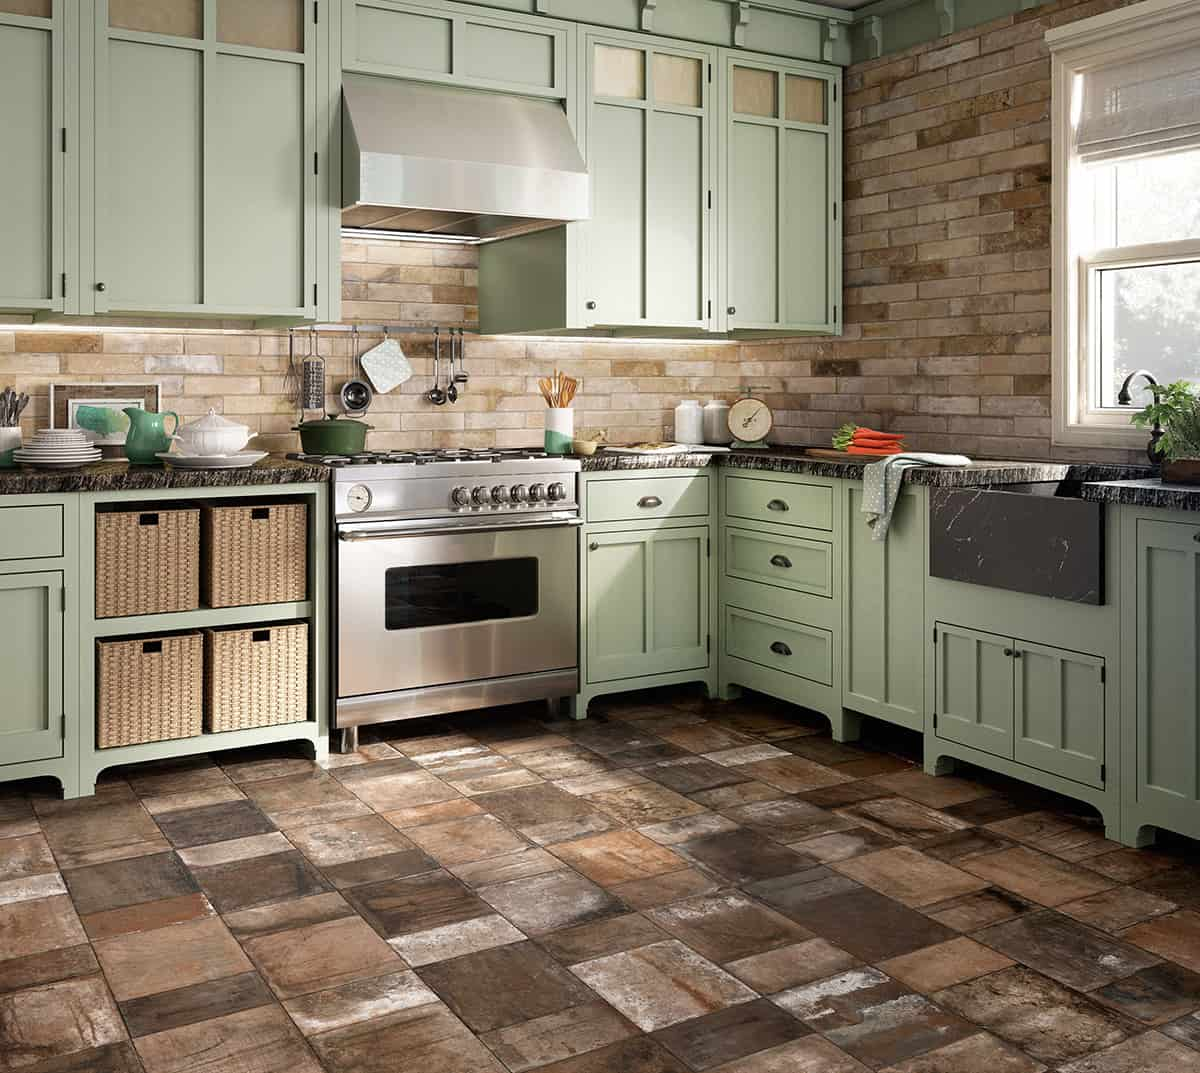 Old Kitchen Tile: 25 Beautiful Tile Flooring Ideas For Living Room, Kitchen